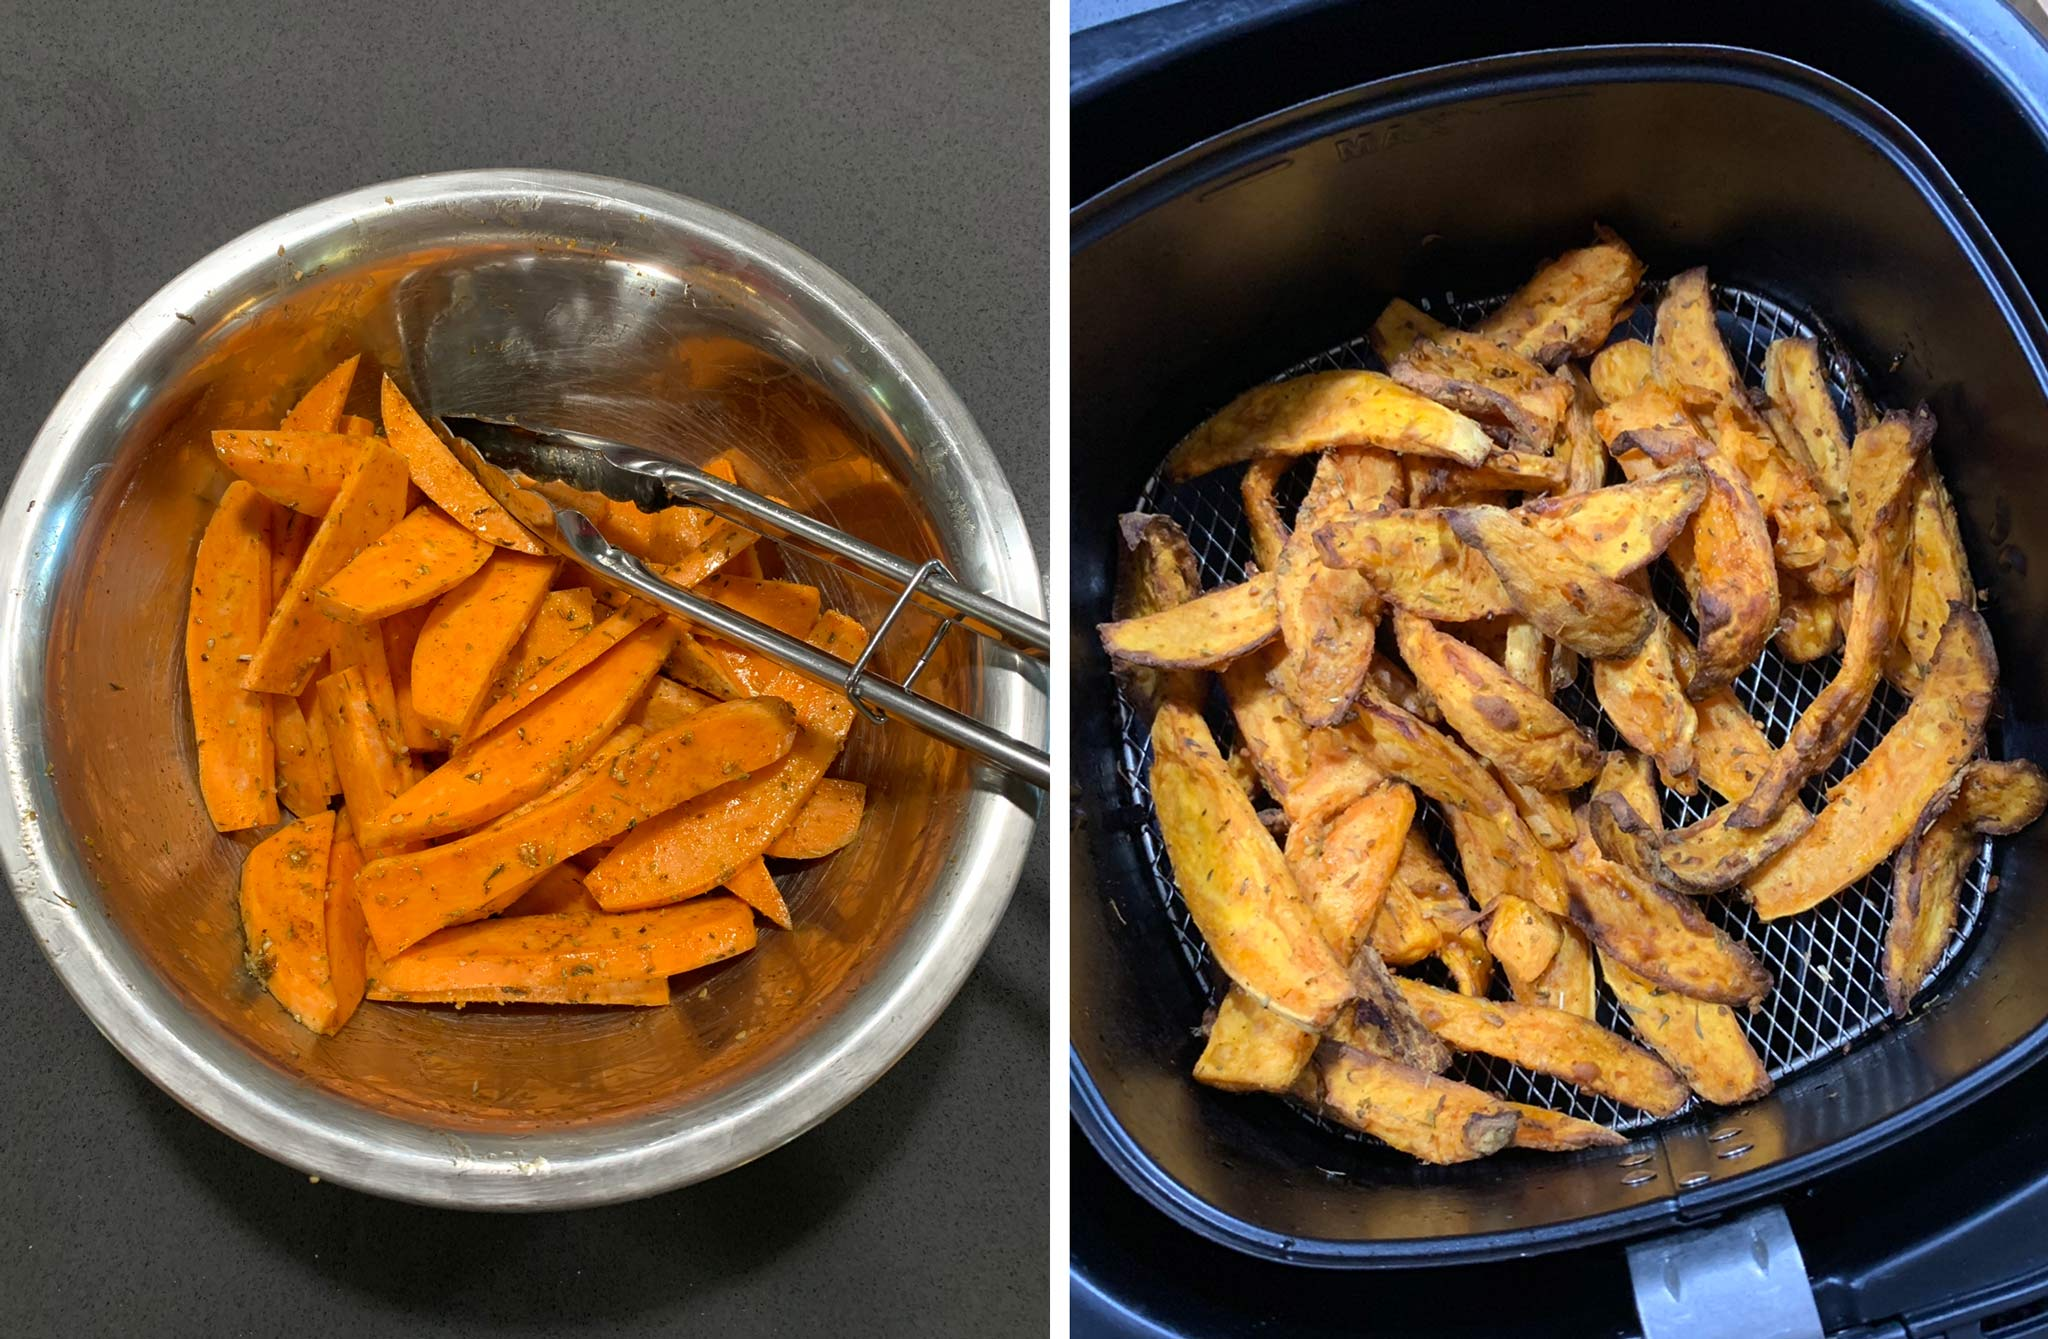 sweet potato fries cooked in the air fryer - one of the first air fryer recipes I tried